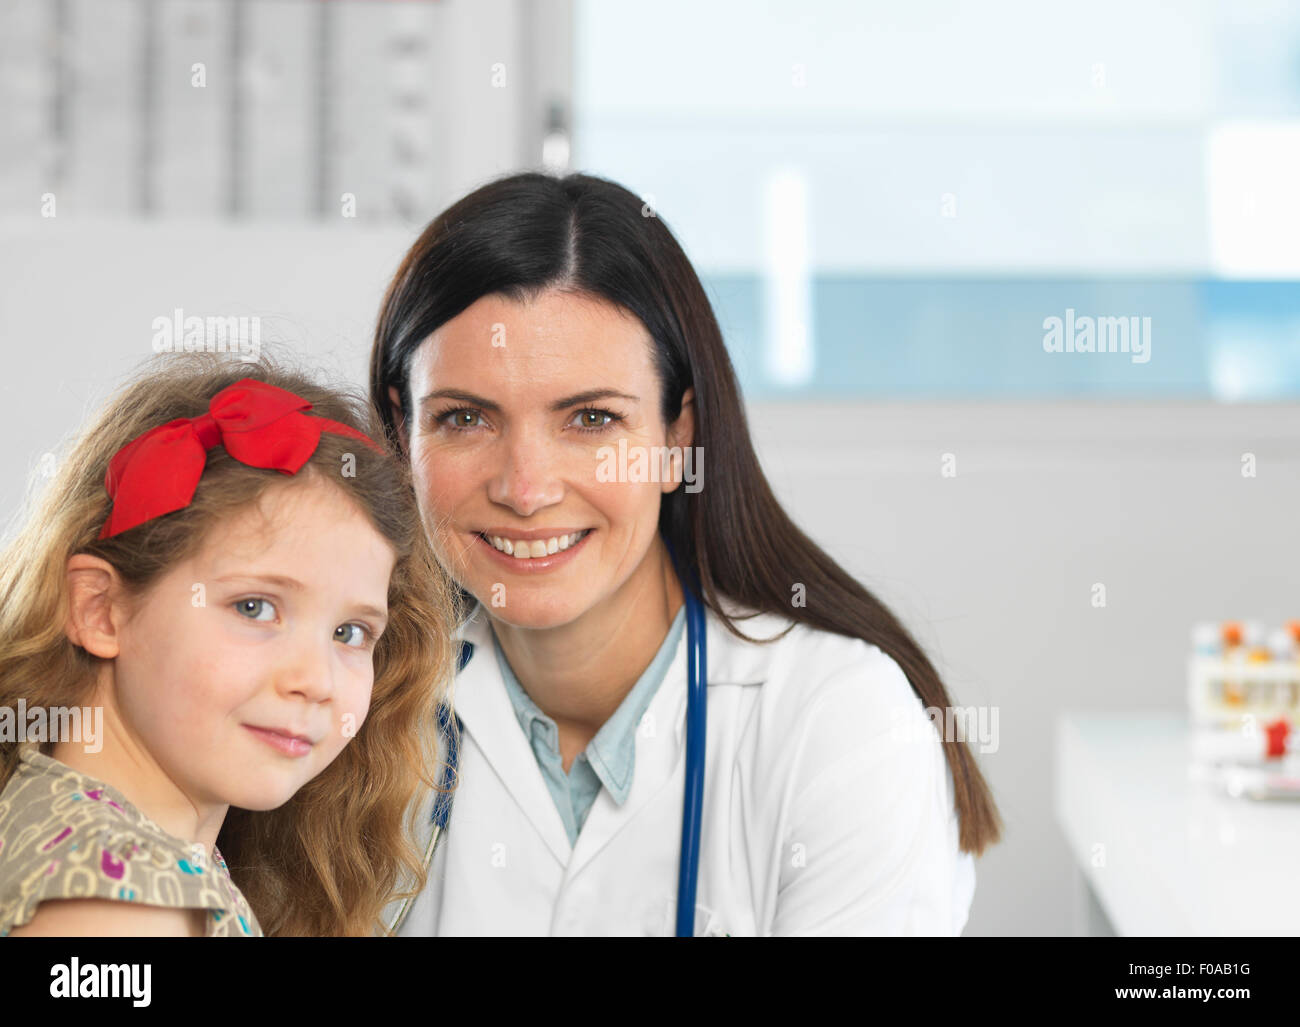 Doctor bonding with young girl during consultation - Stock Image